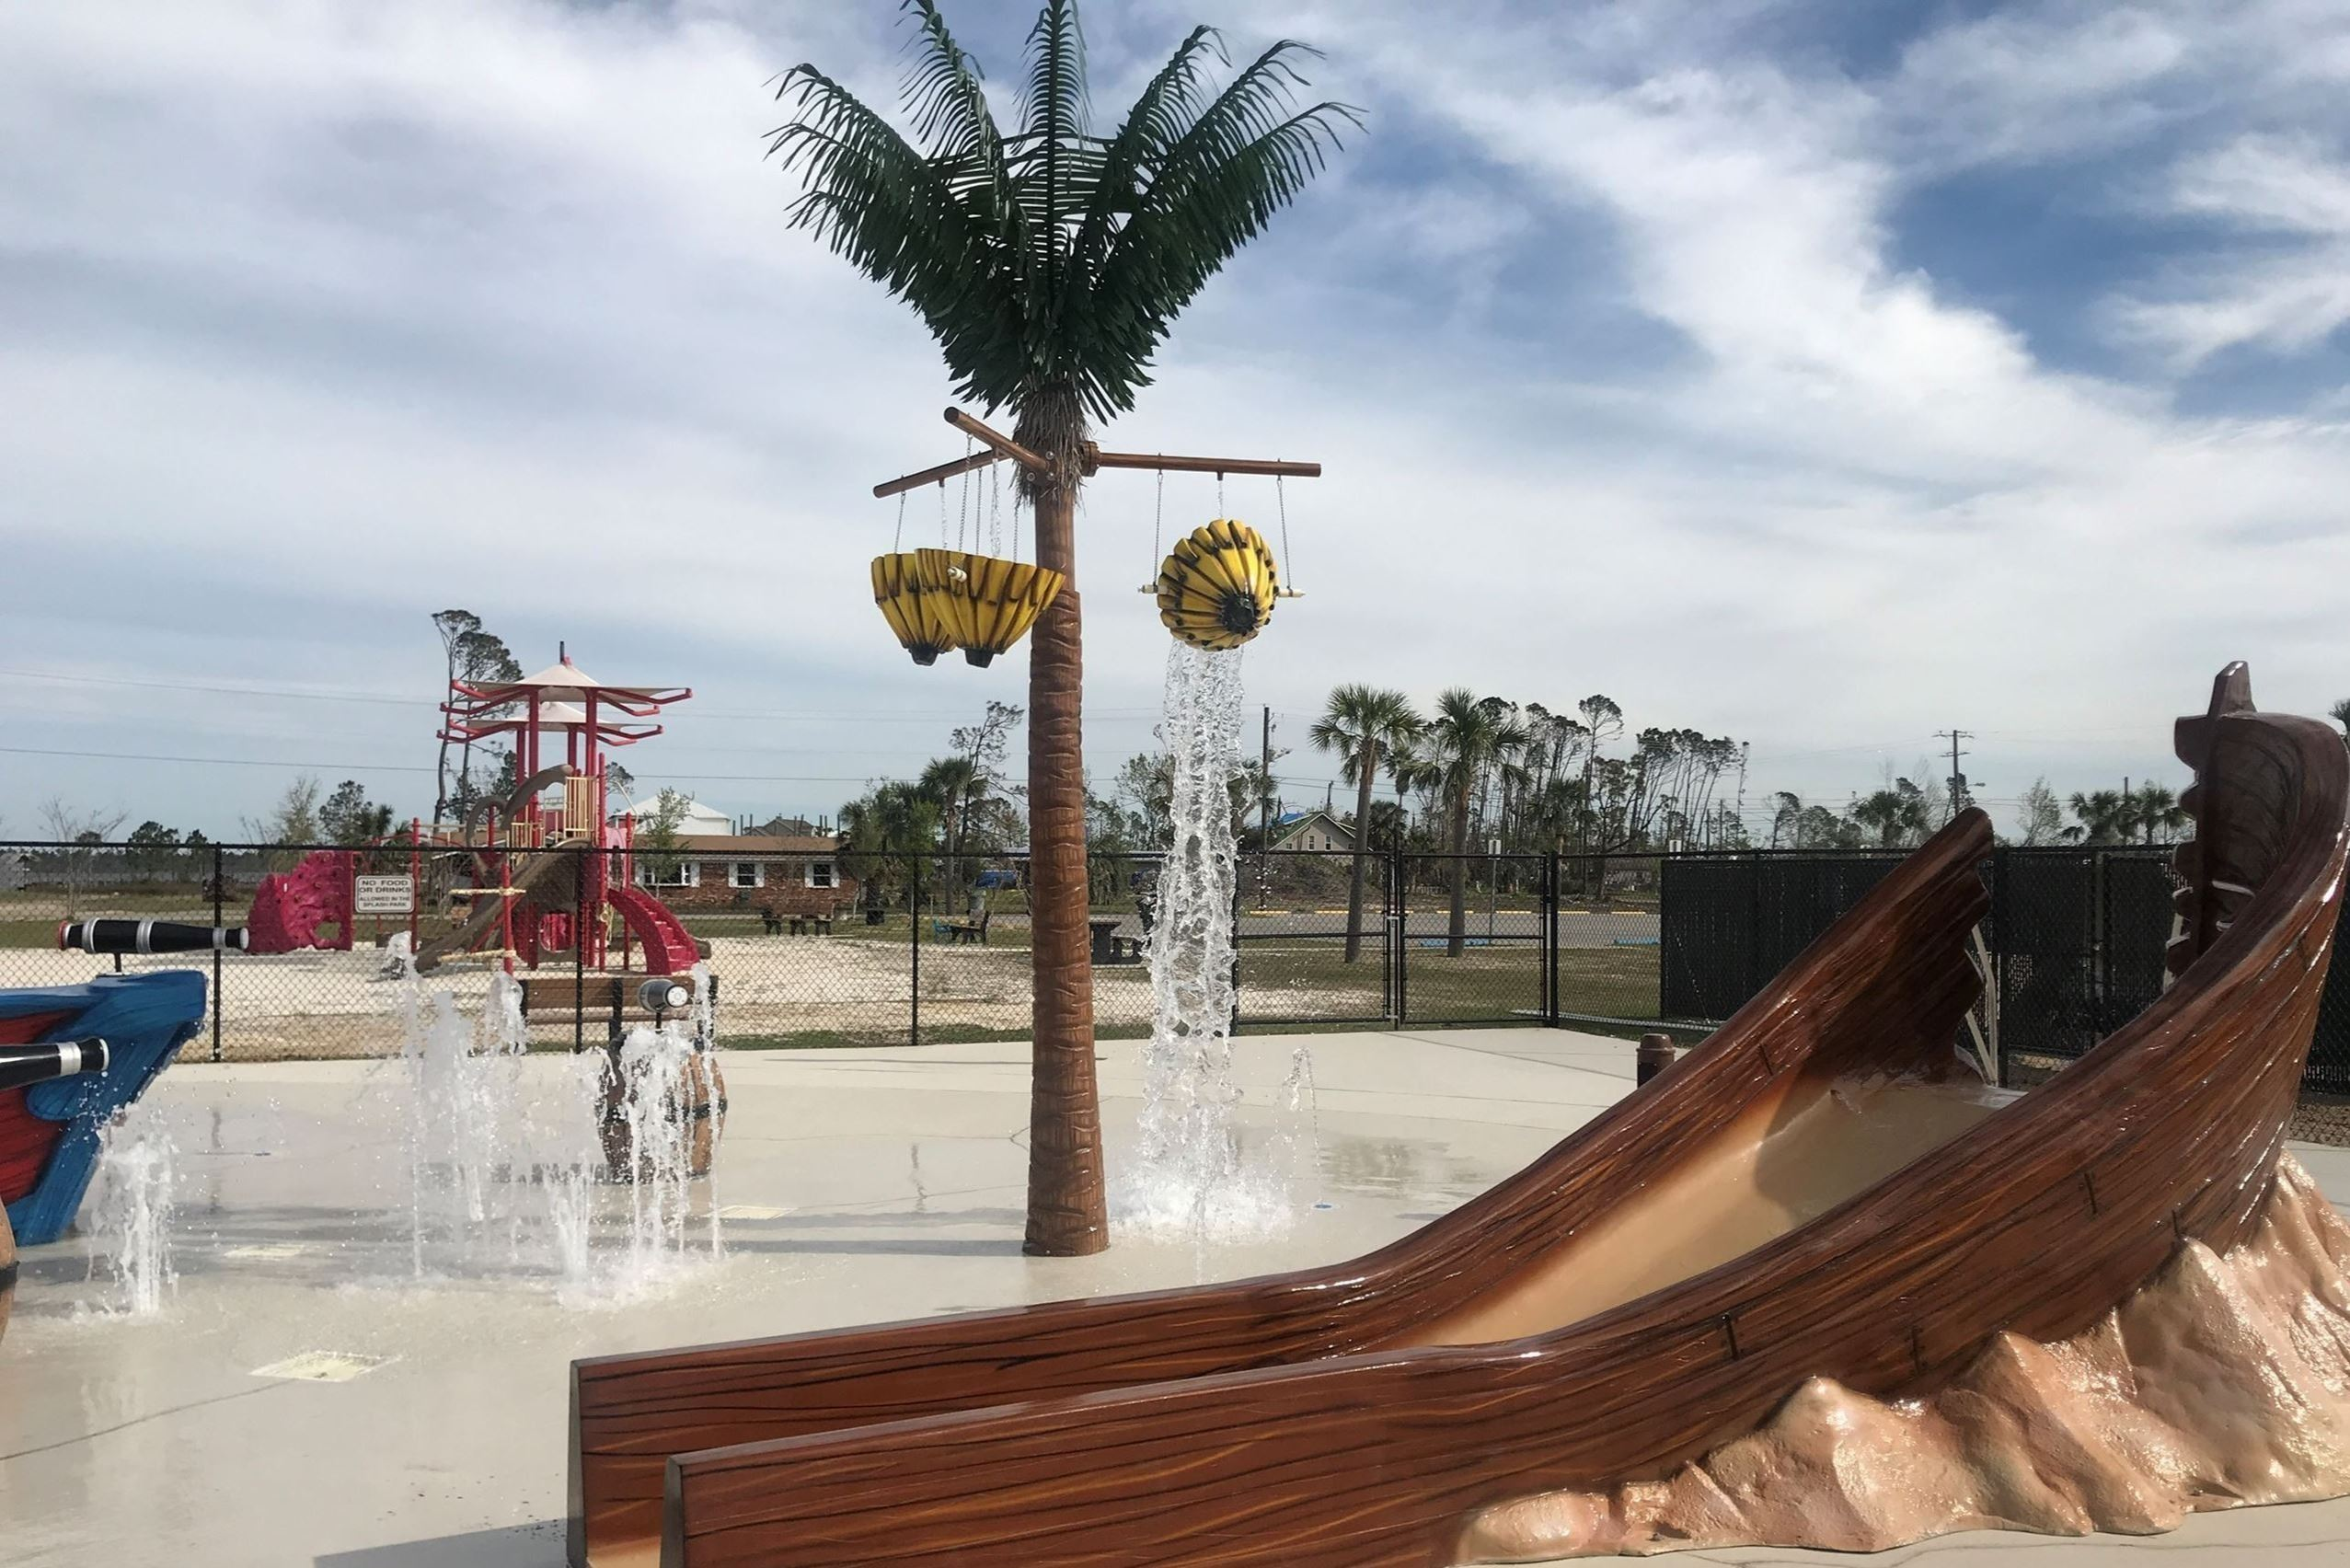 Splash pad at Kinsaul Park, Lynn Haven, FL